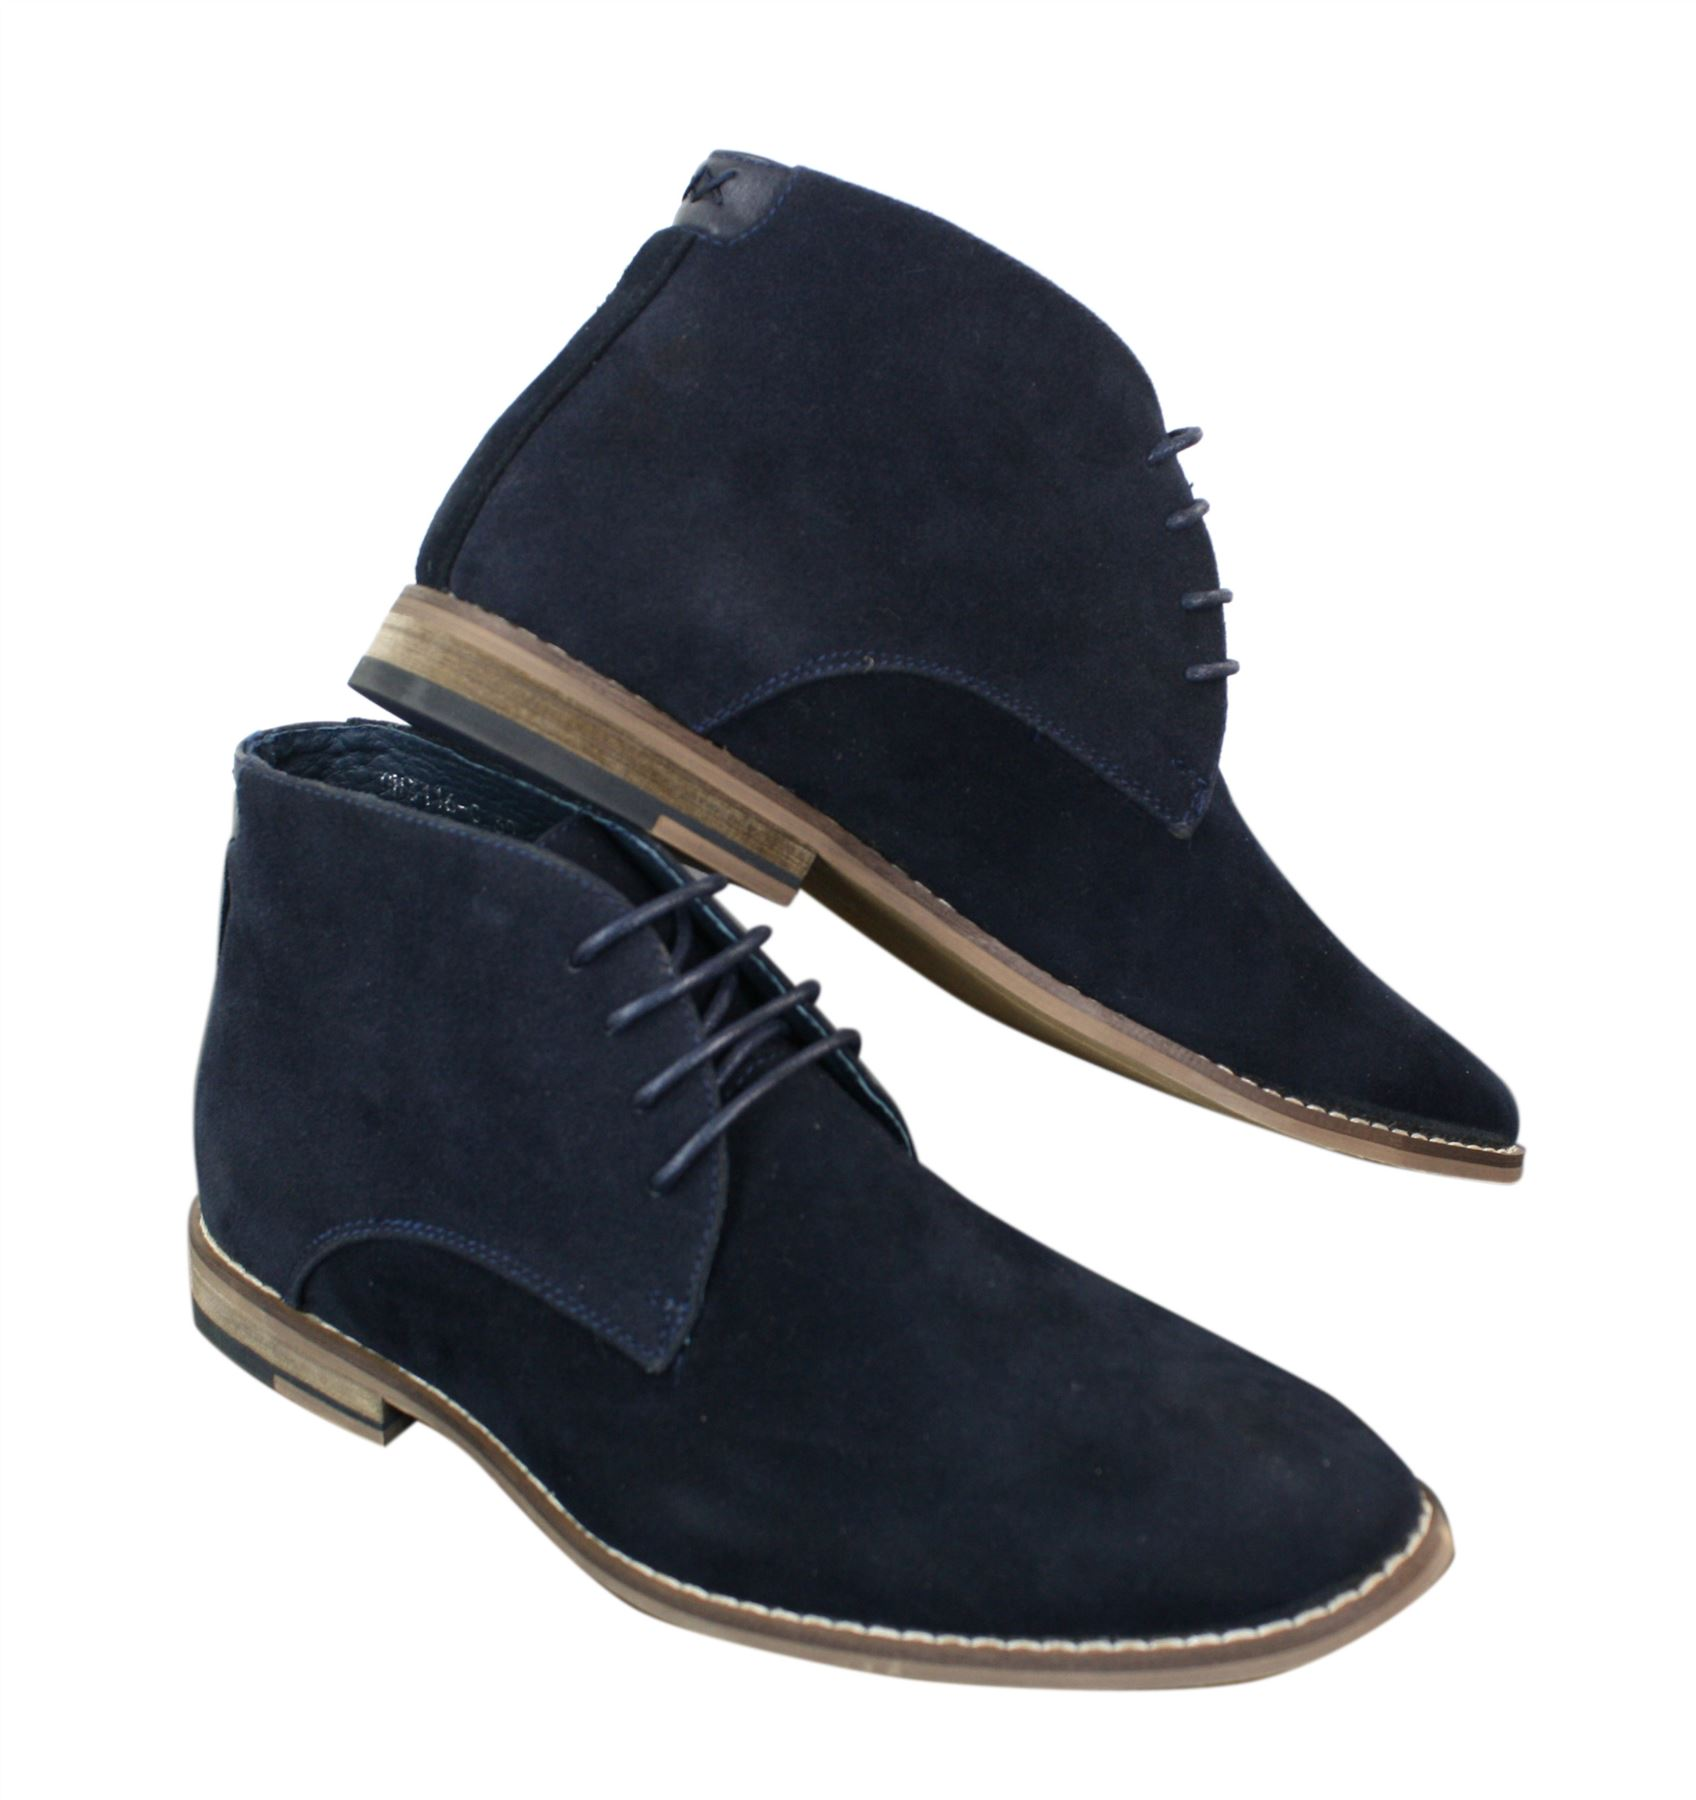 Men Suede Ankle Boots Chelsea Laced Real Leather Lined Italian Design Smart